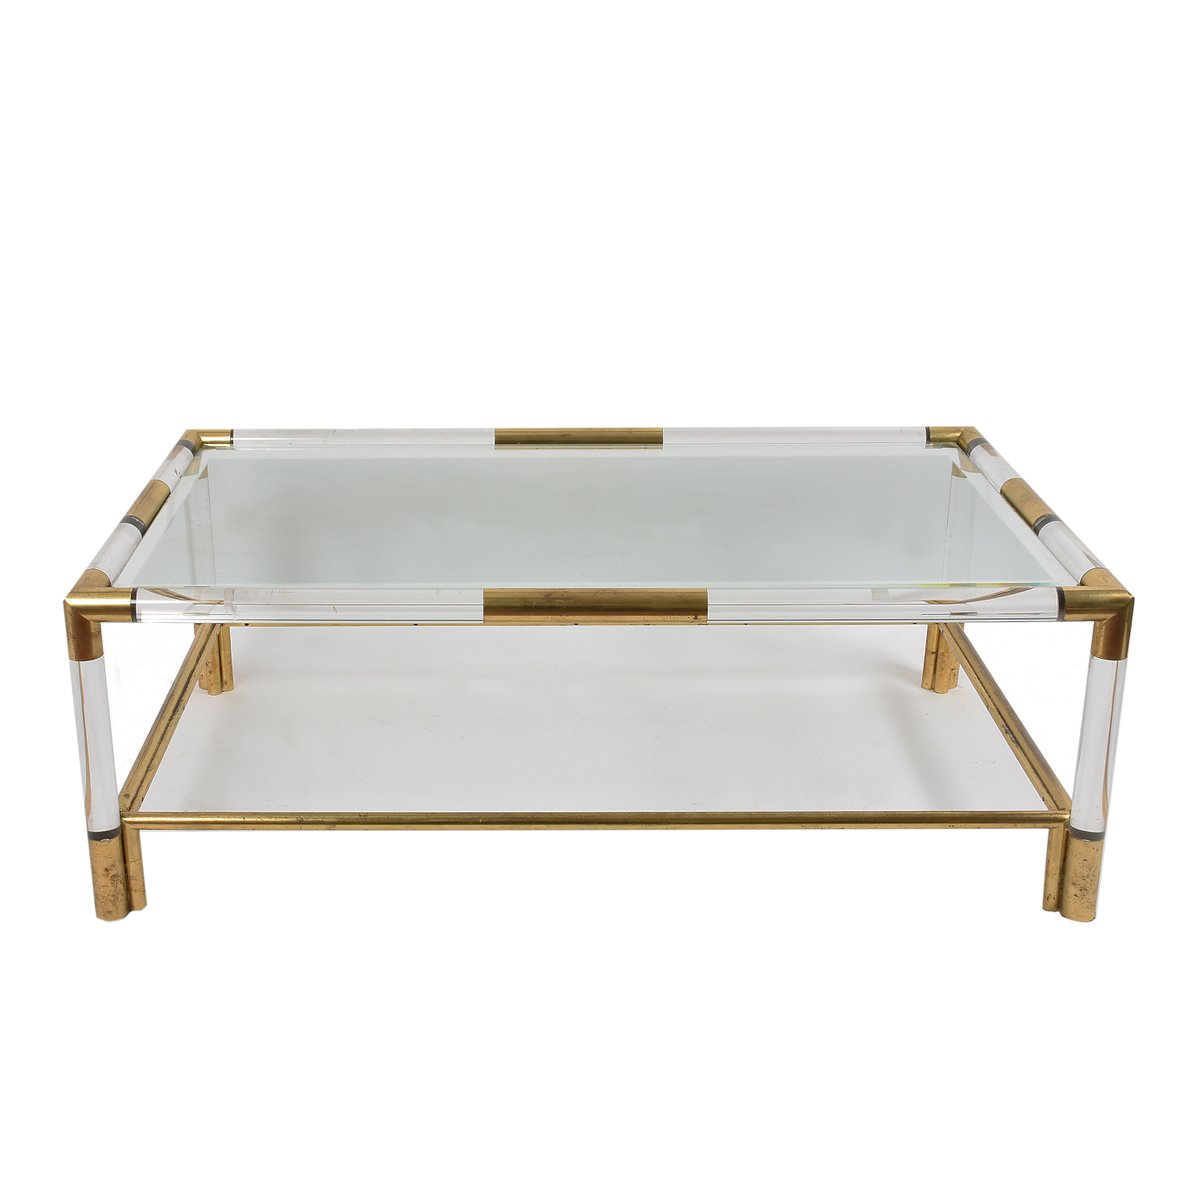 Coffee table in lucite brass 1970s for sale at pamono for Lucite and brass coffee table